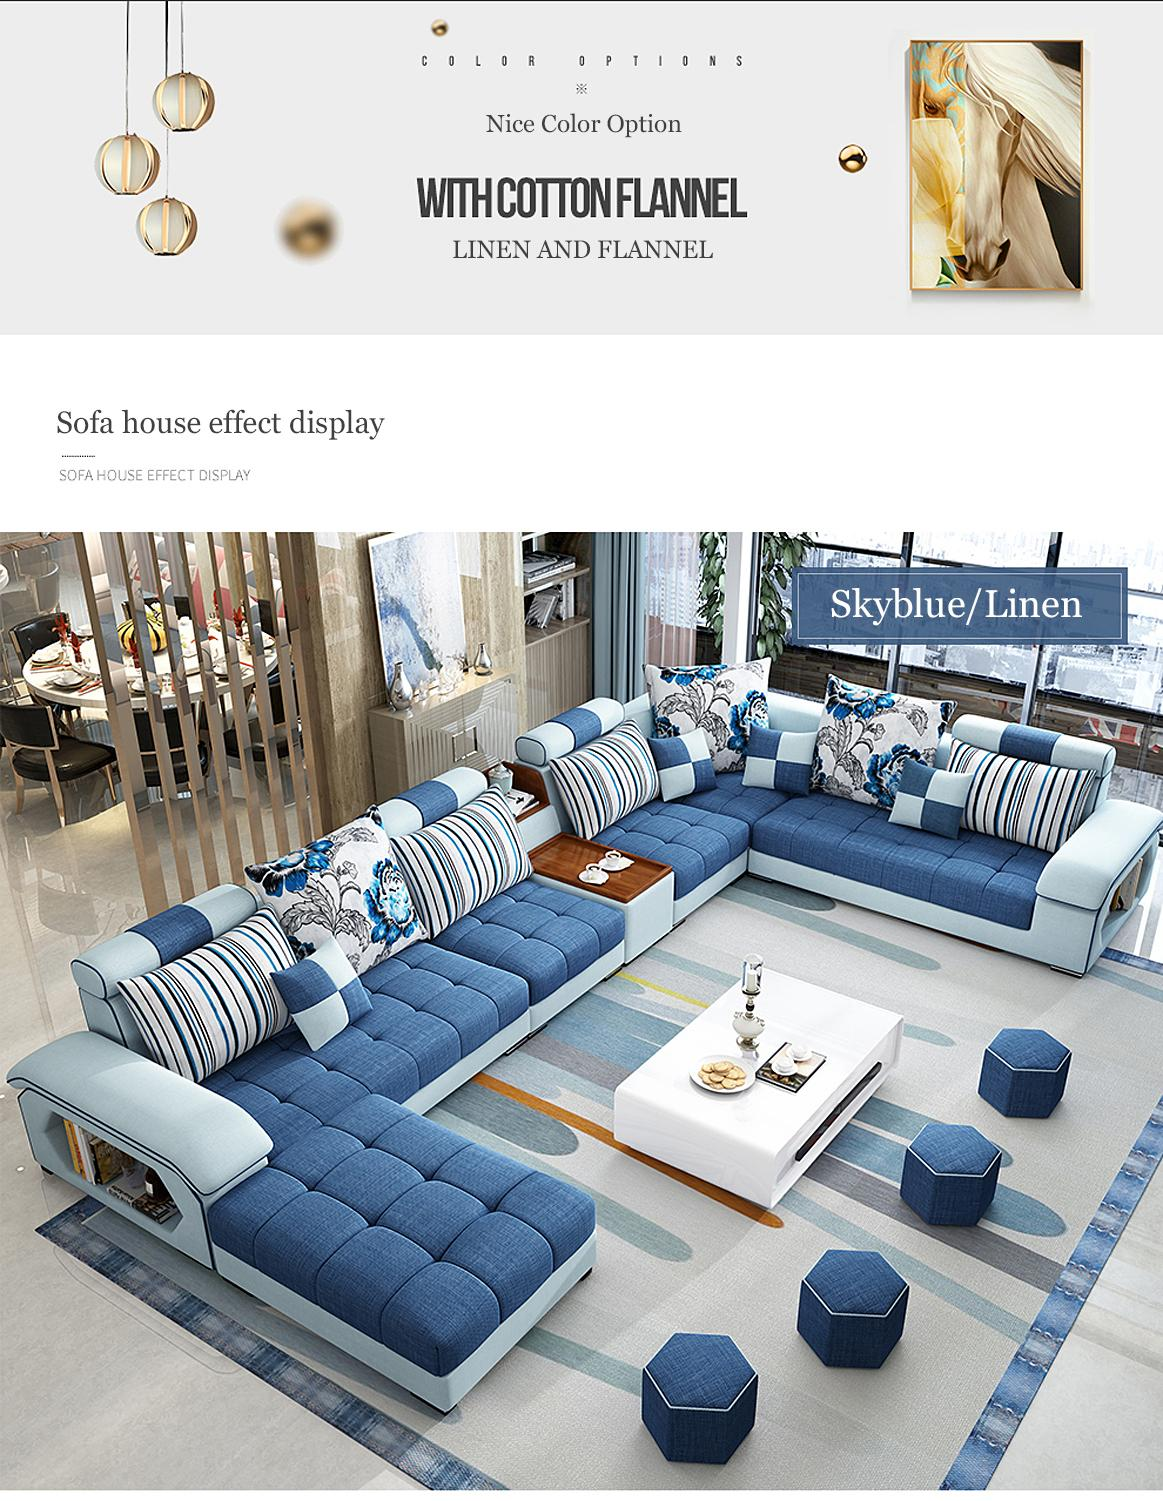 Sofas for sale - Home Sofa prices, nds & review in Philippines ... on